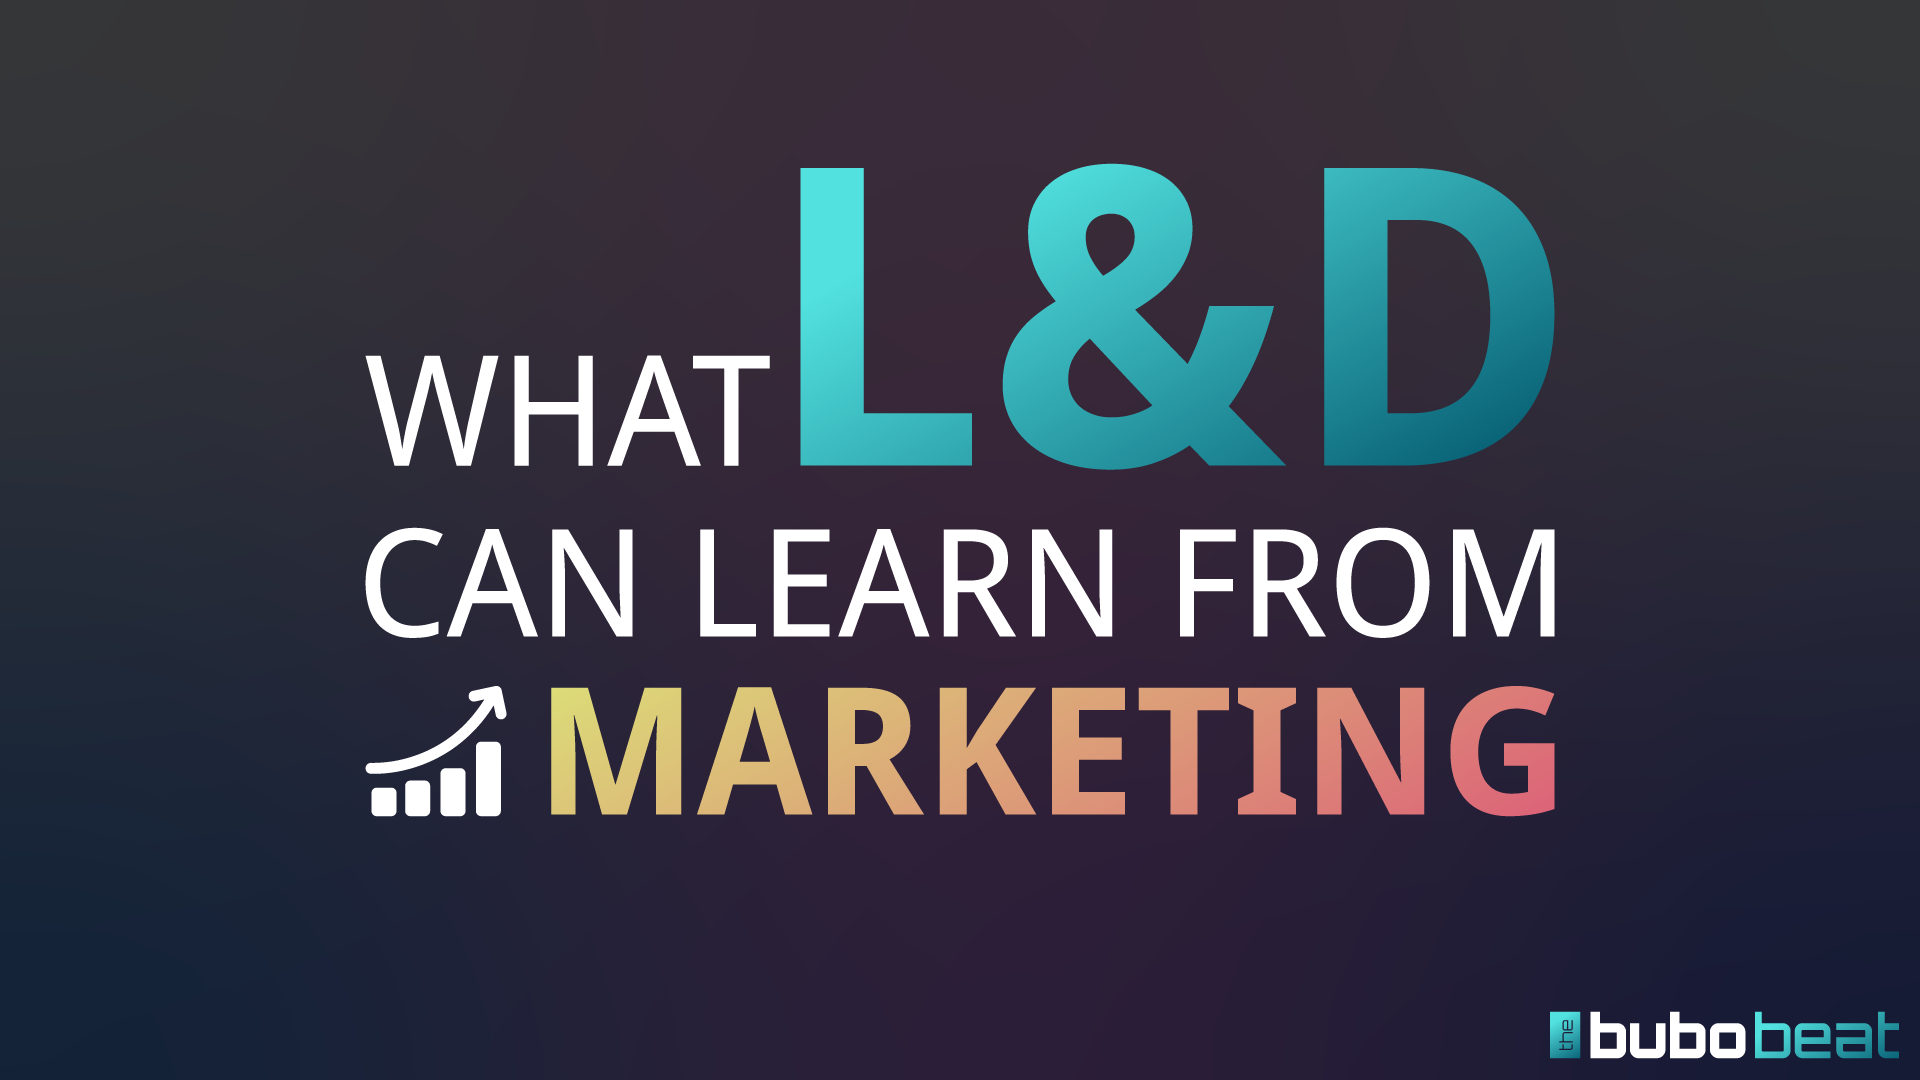 What l&d can learn from marketing